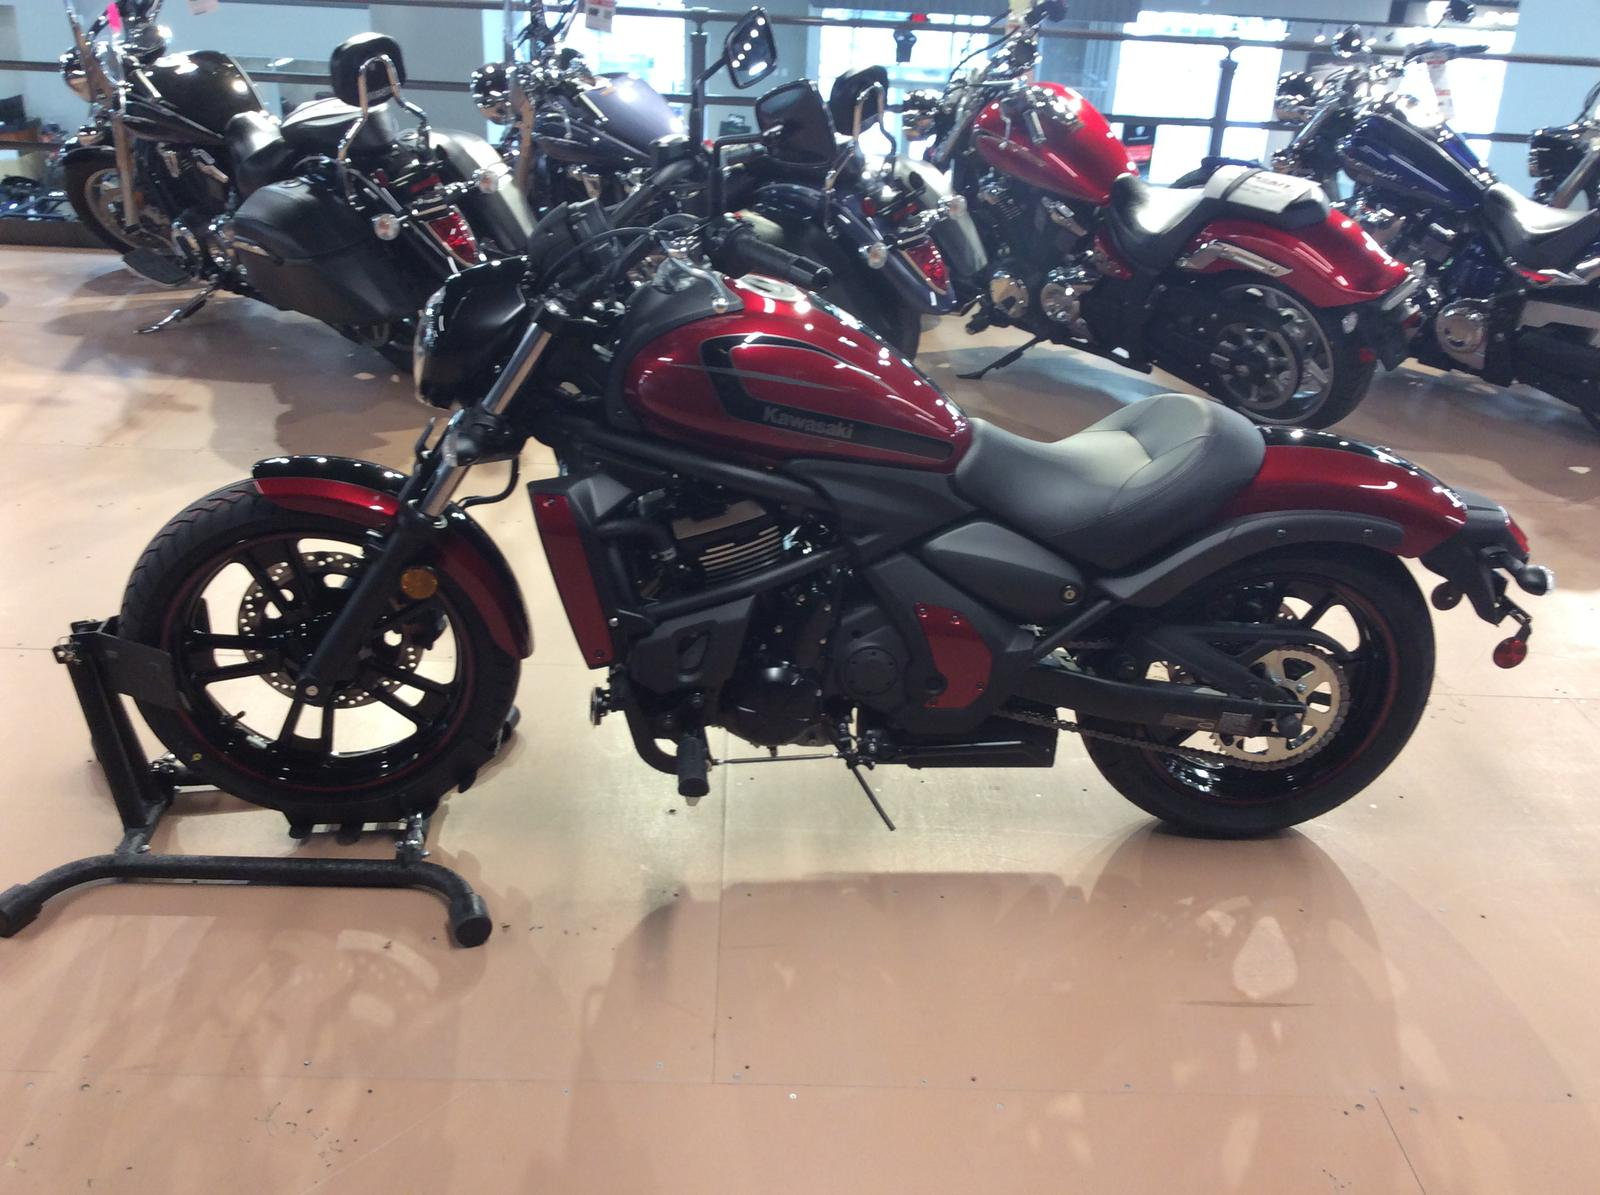 2017 VULCAN S Special Edition W ABS